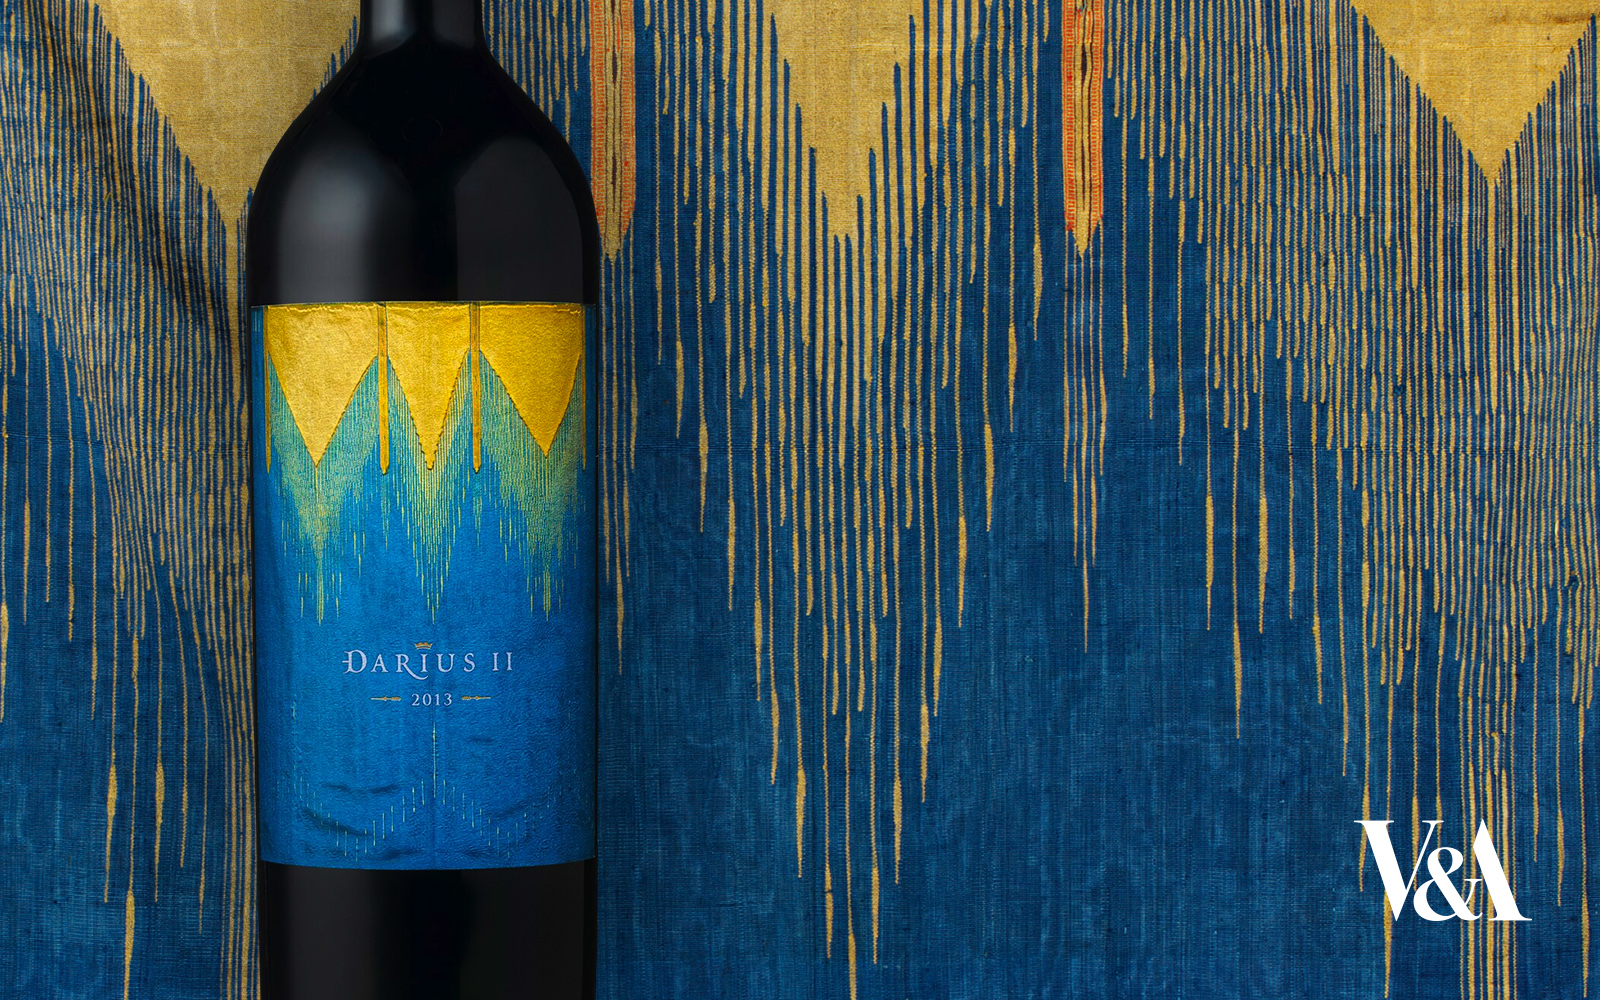 Blue and yellow silk tapestry with matching wine bottle in front